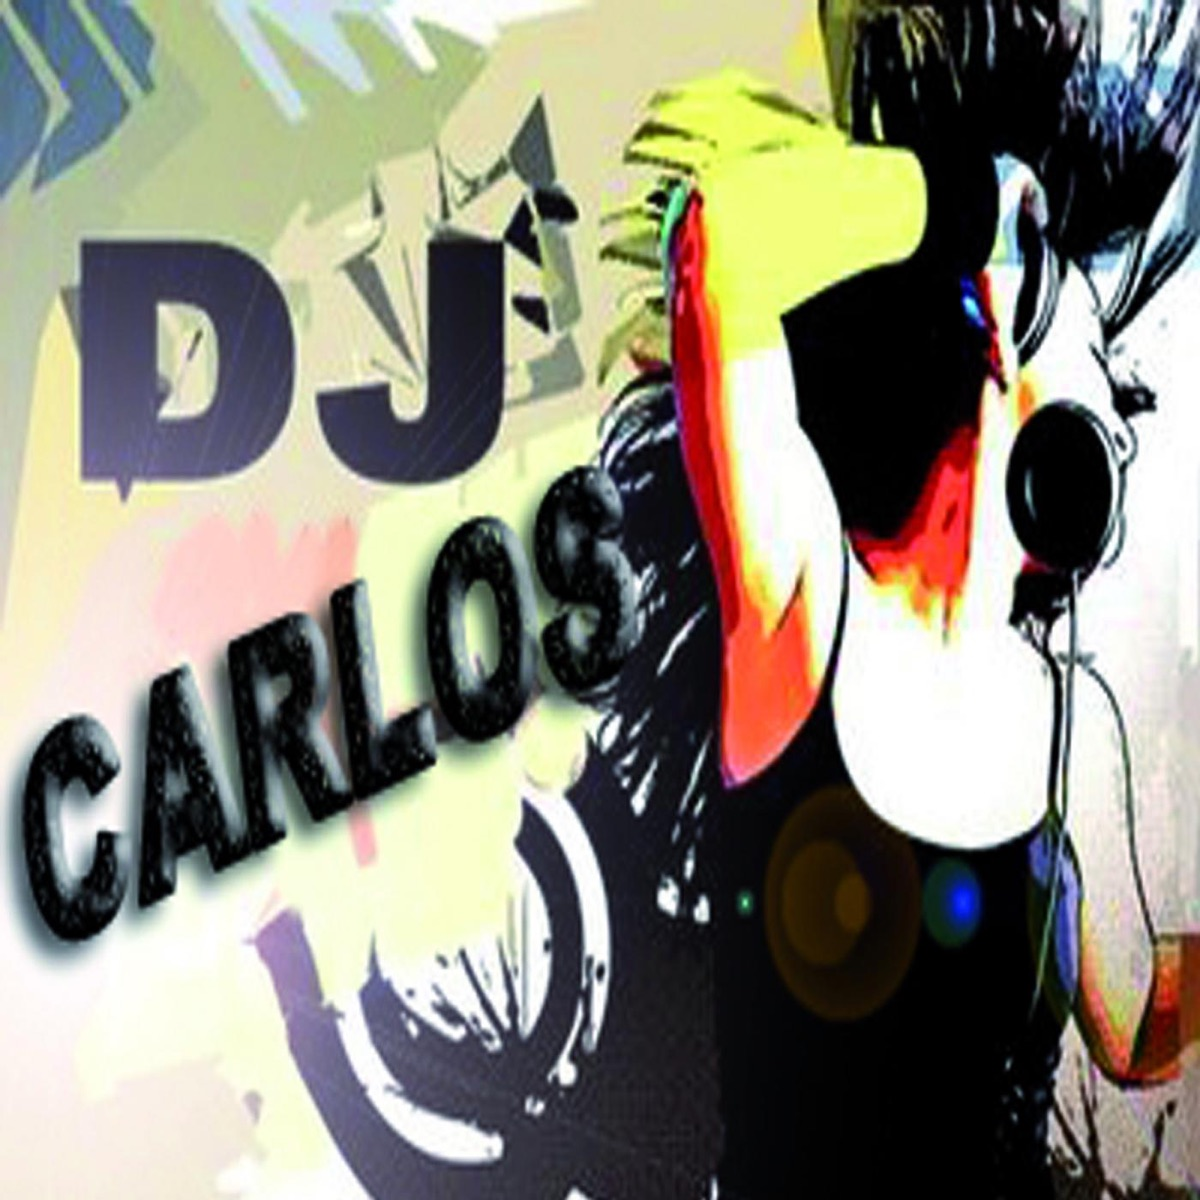 DJ AXX MIX MAI WITH DJ CARLOS 1